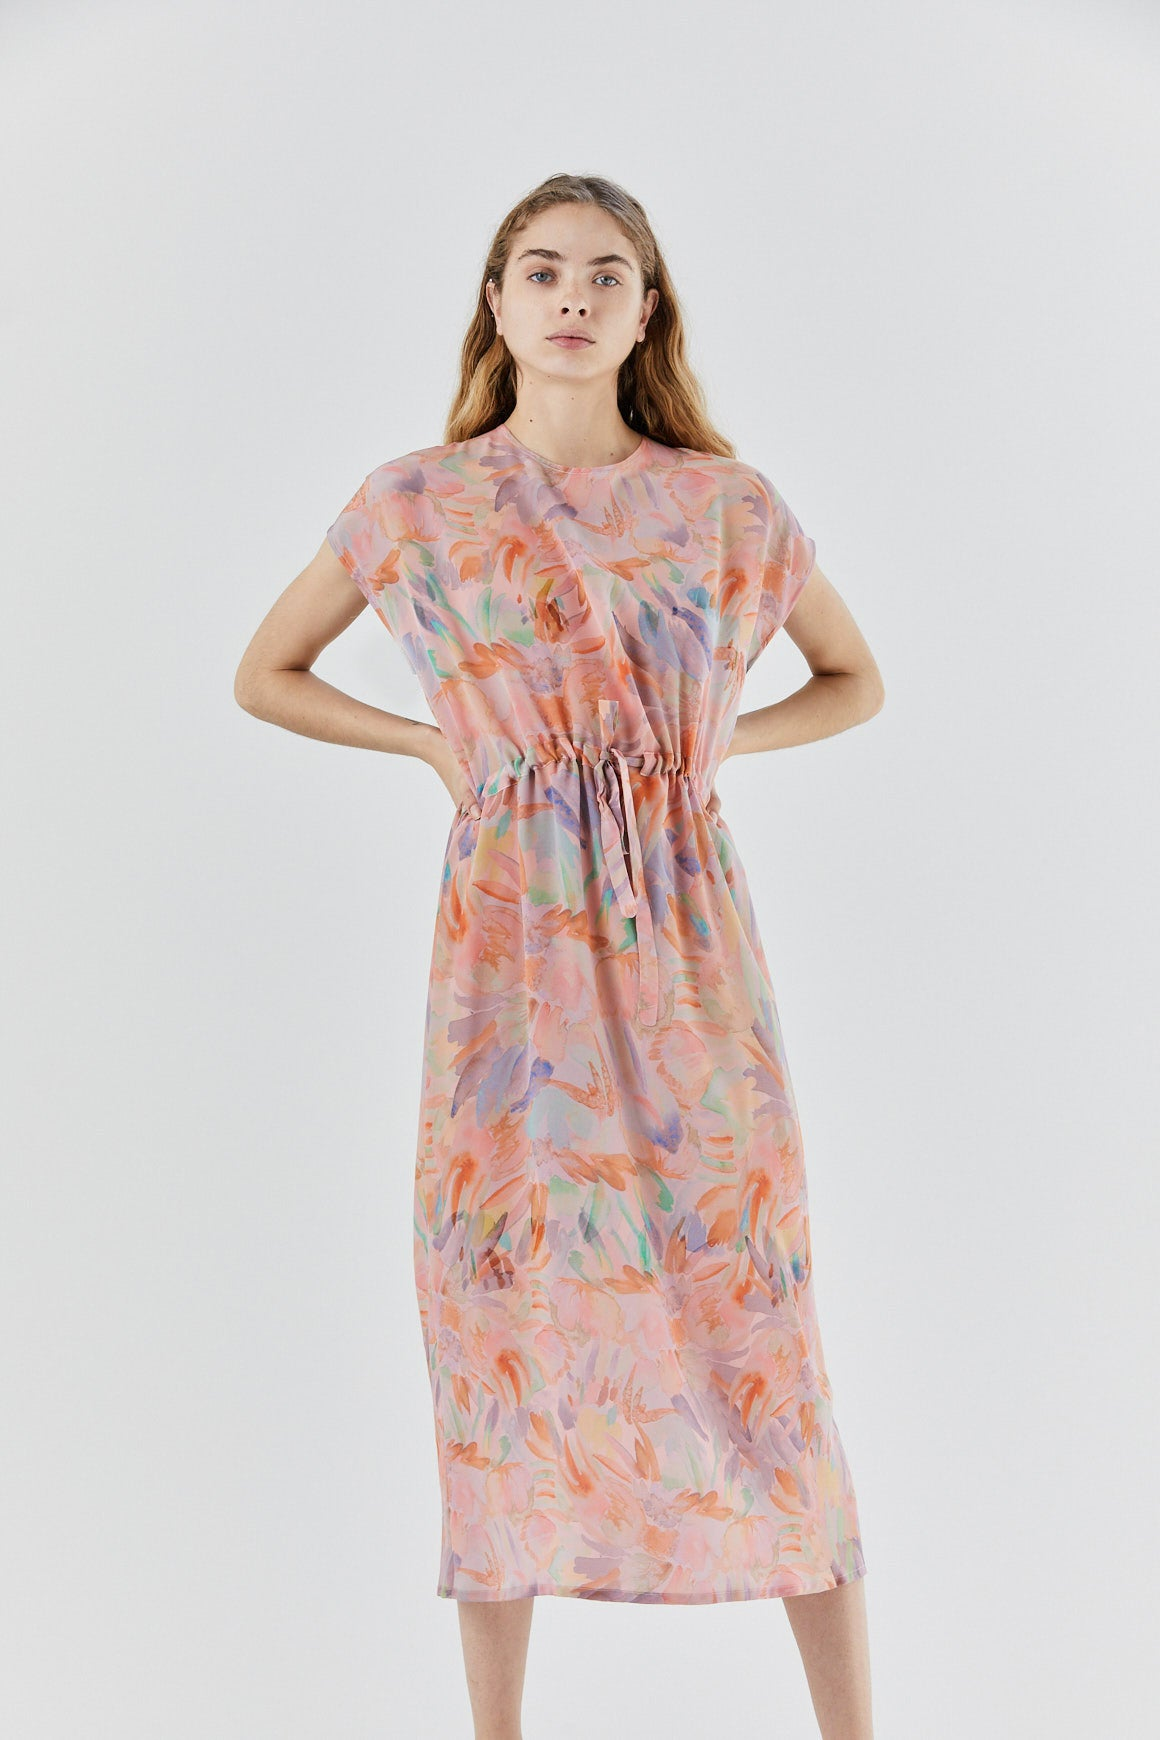 ANNTIAN - simple dress, pink